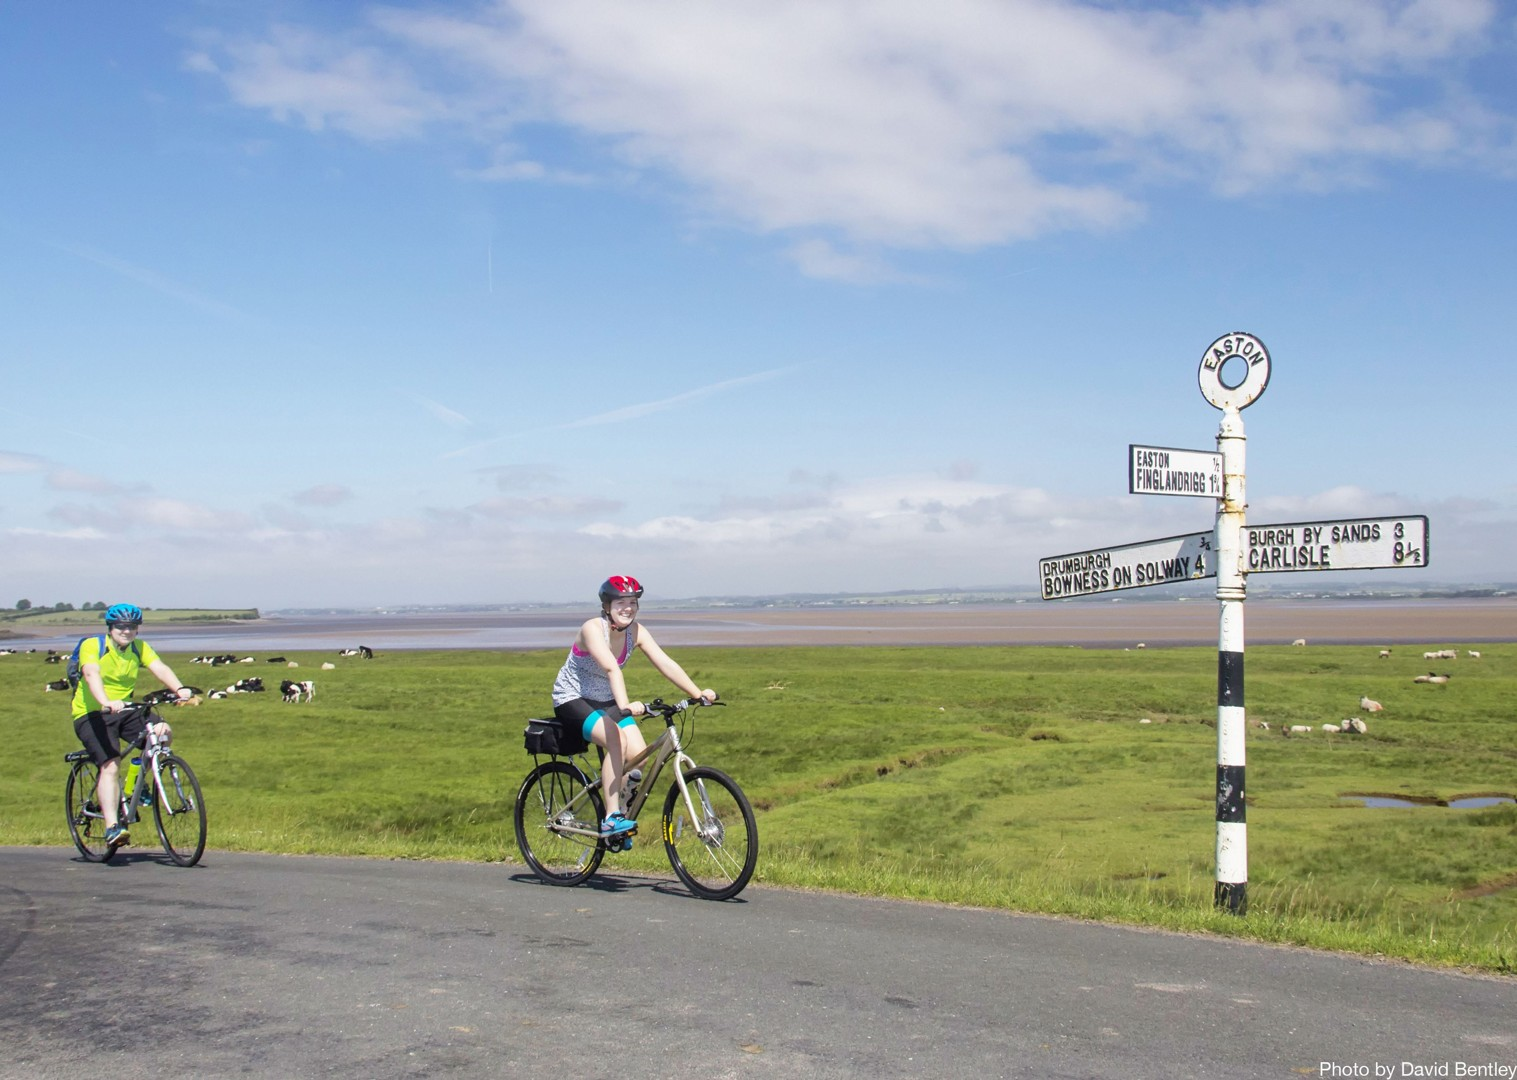 tynemouth-hadrians-cycleway-family-supported.jpg - UK - Hadrian's Cycleway 4 Day - Supported Family Cycling Holiday - Family Cycling